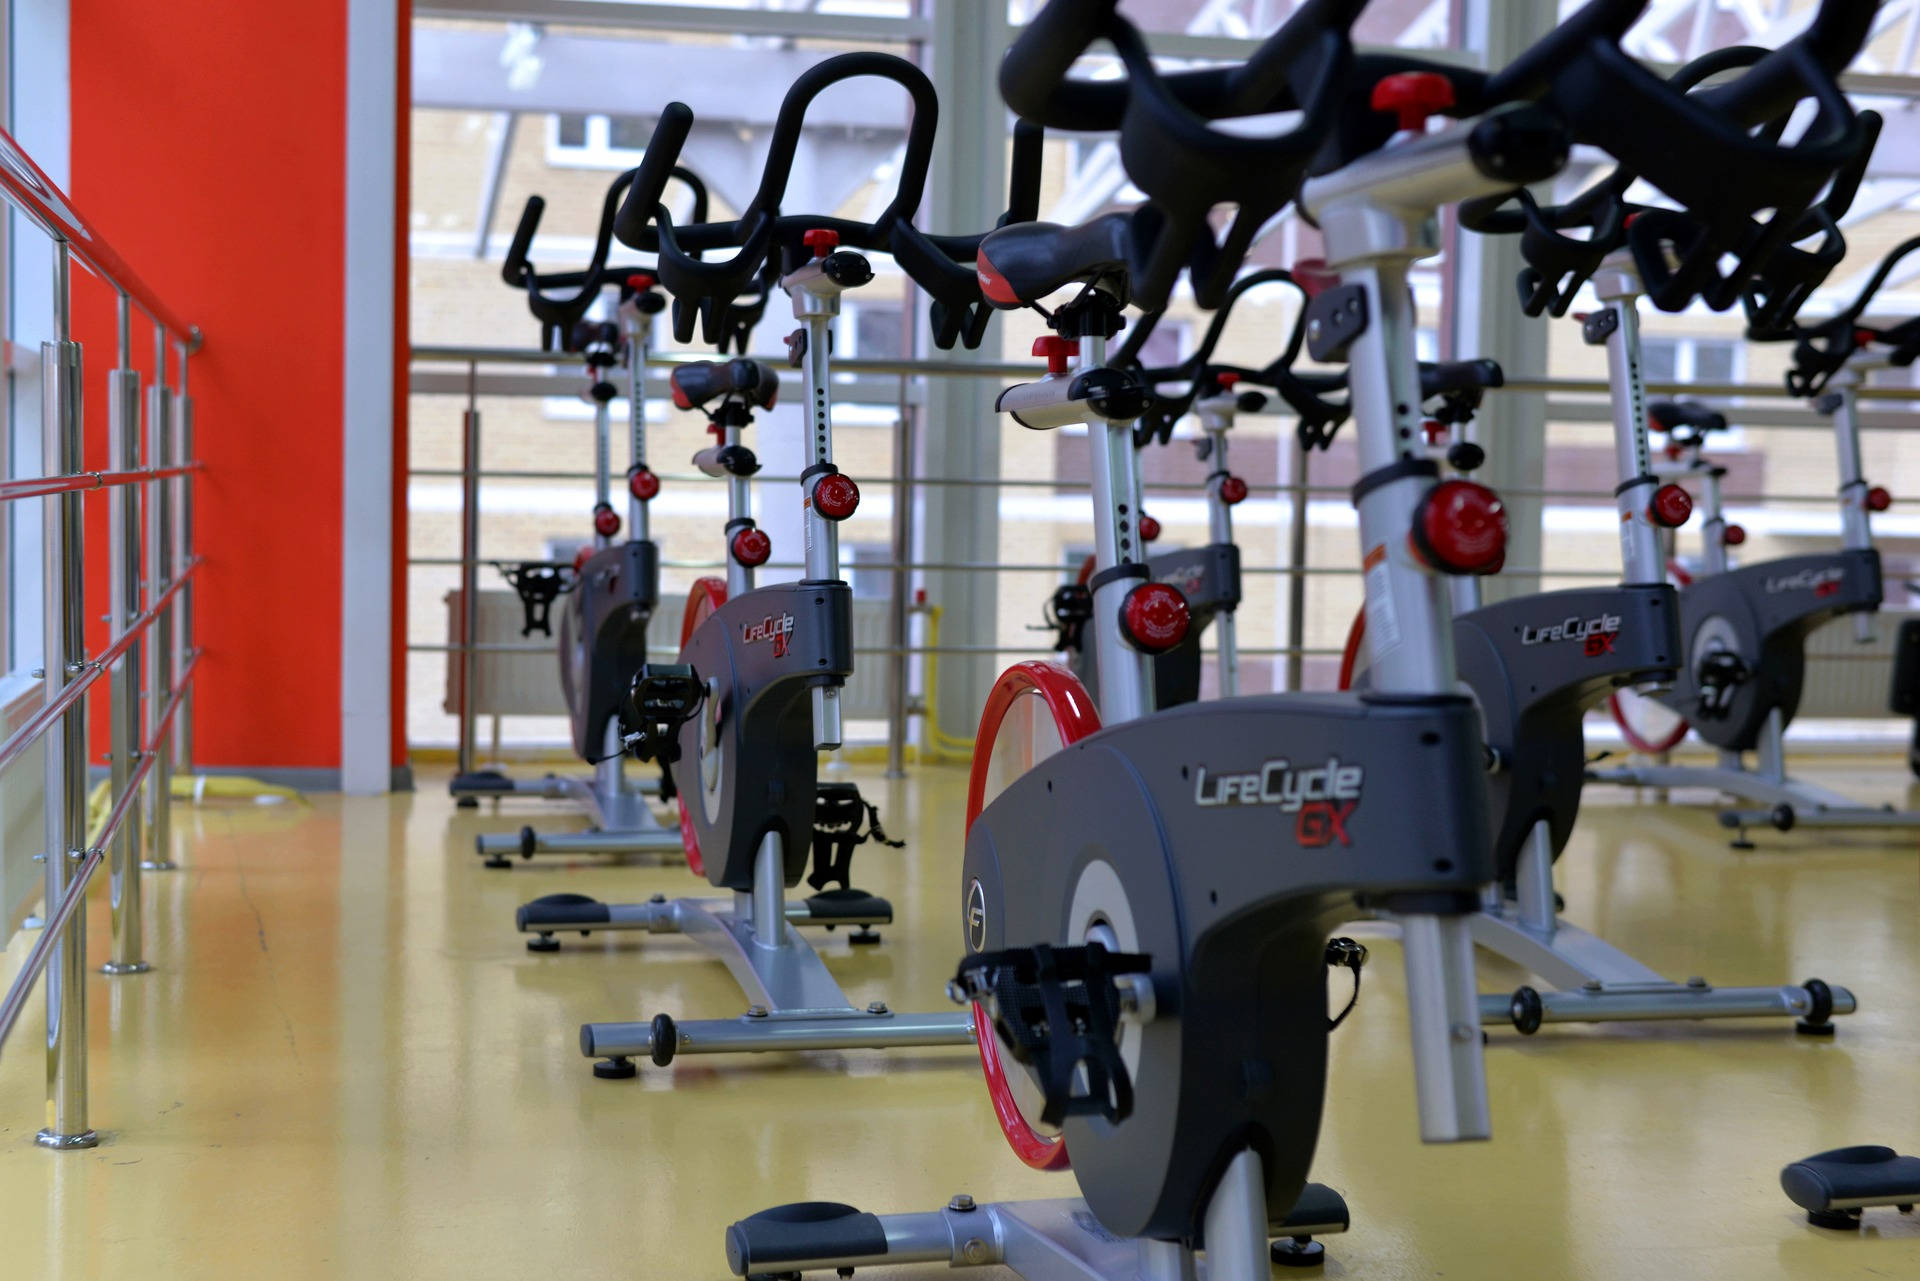 The Best Tracker for Indoor Cycling and Spinning